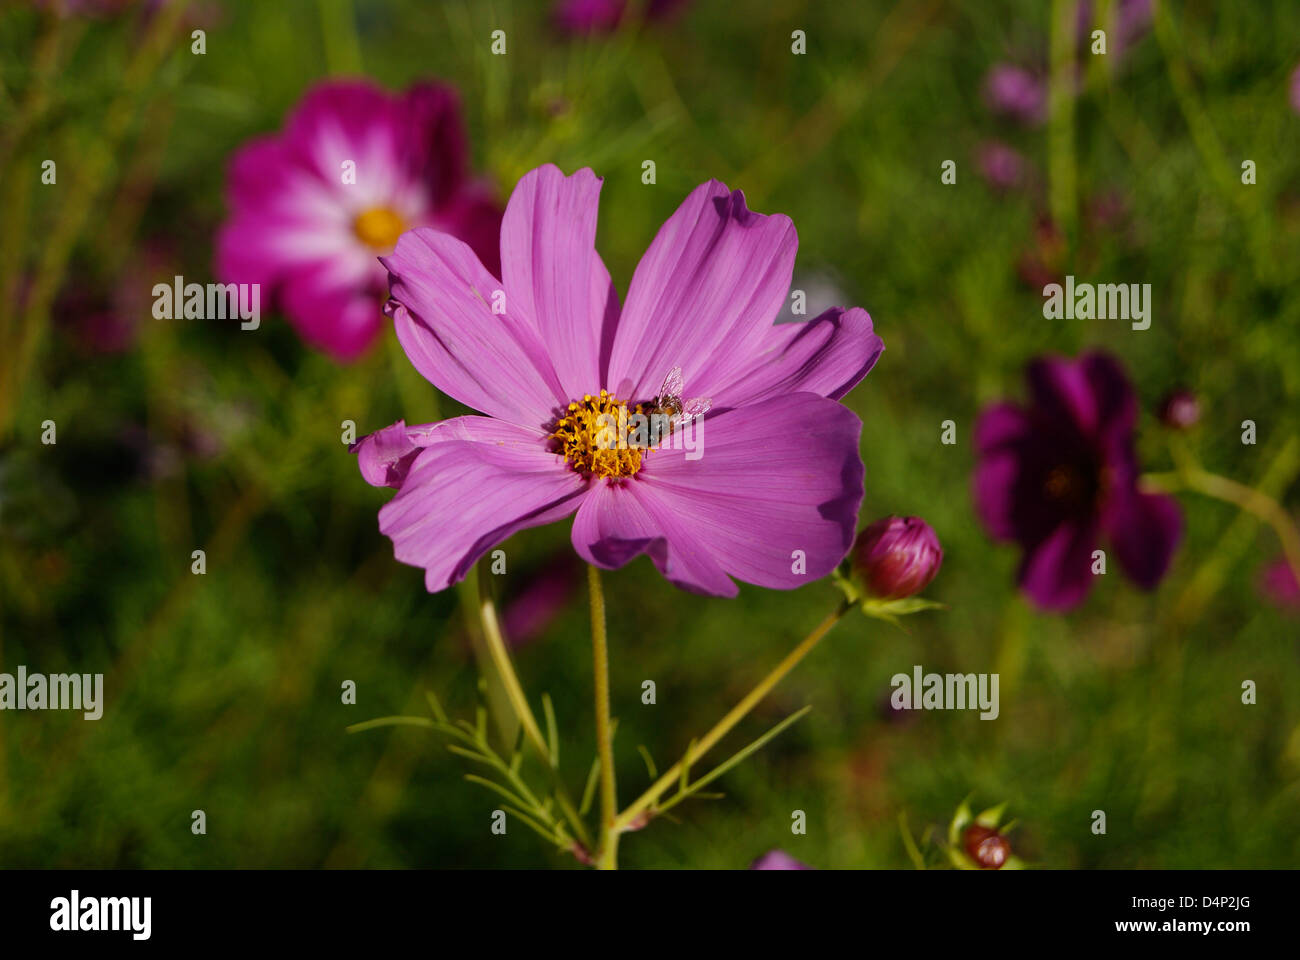 Gadfly Insect Fly Sucking Honey From Violet Marigold Flowers Stock